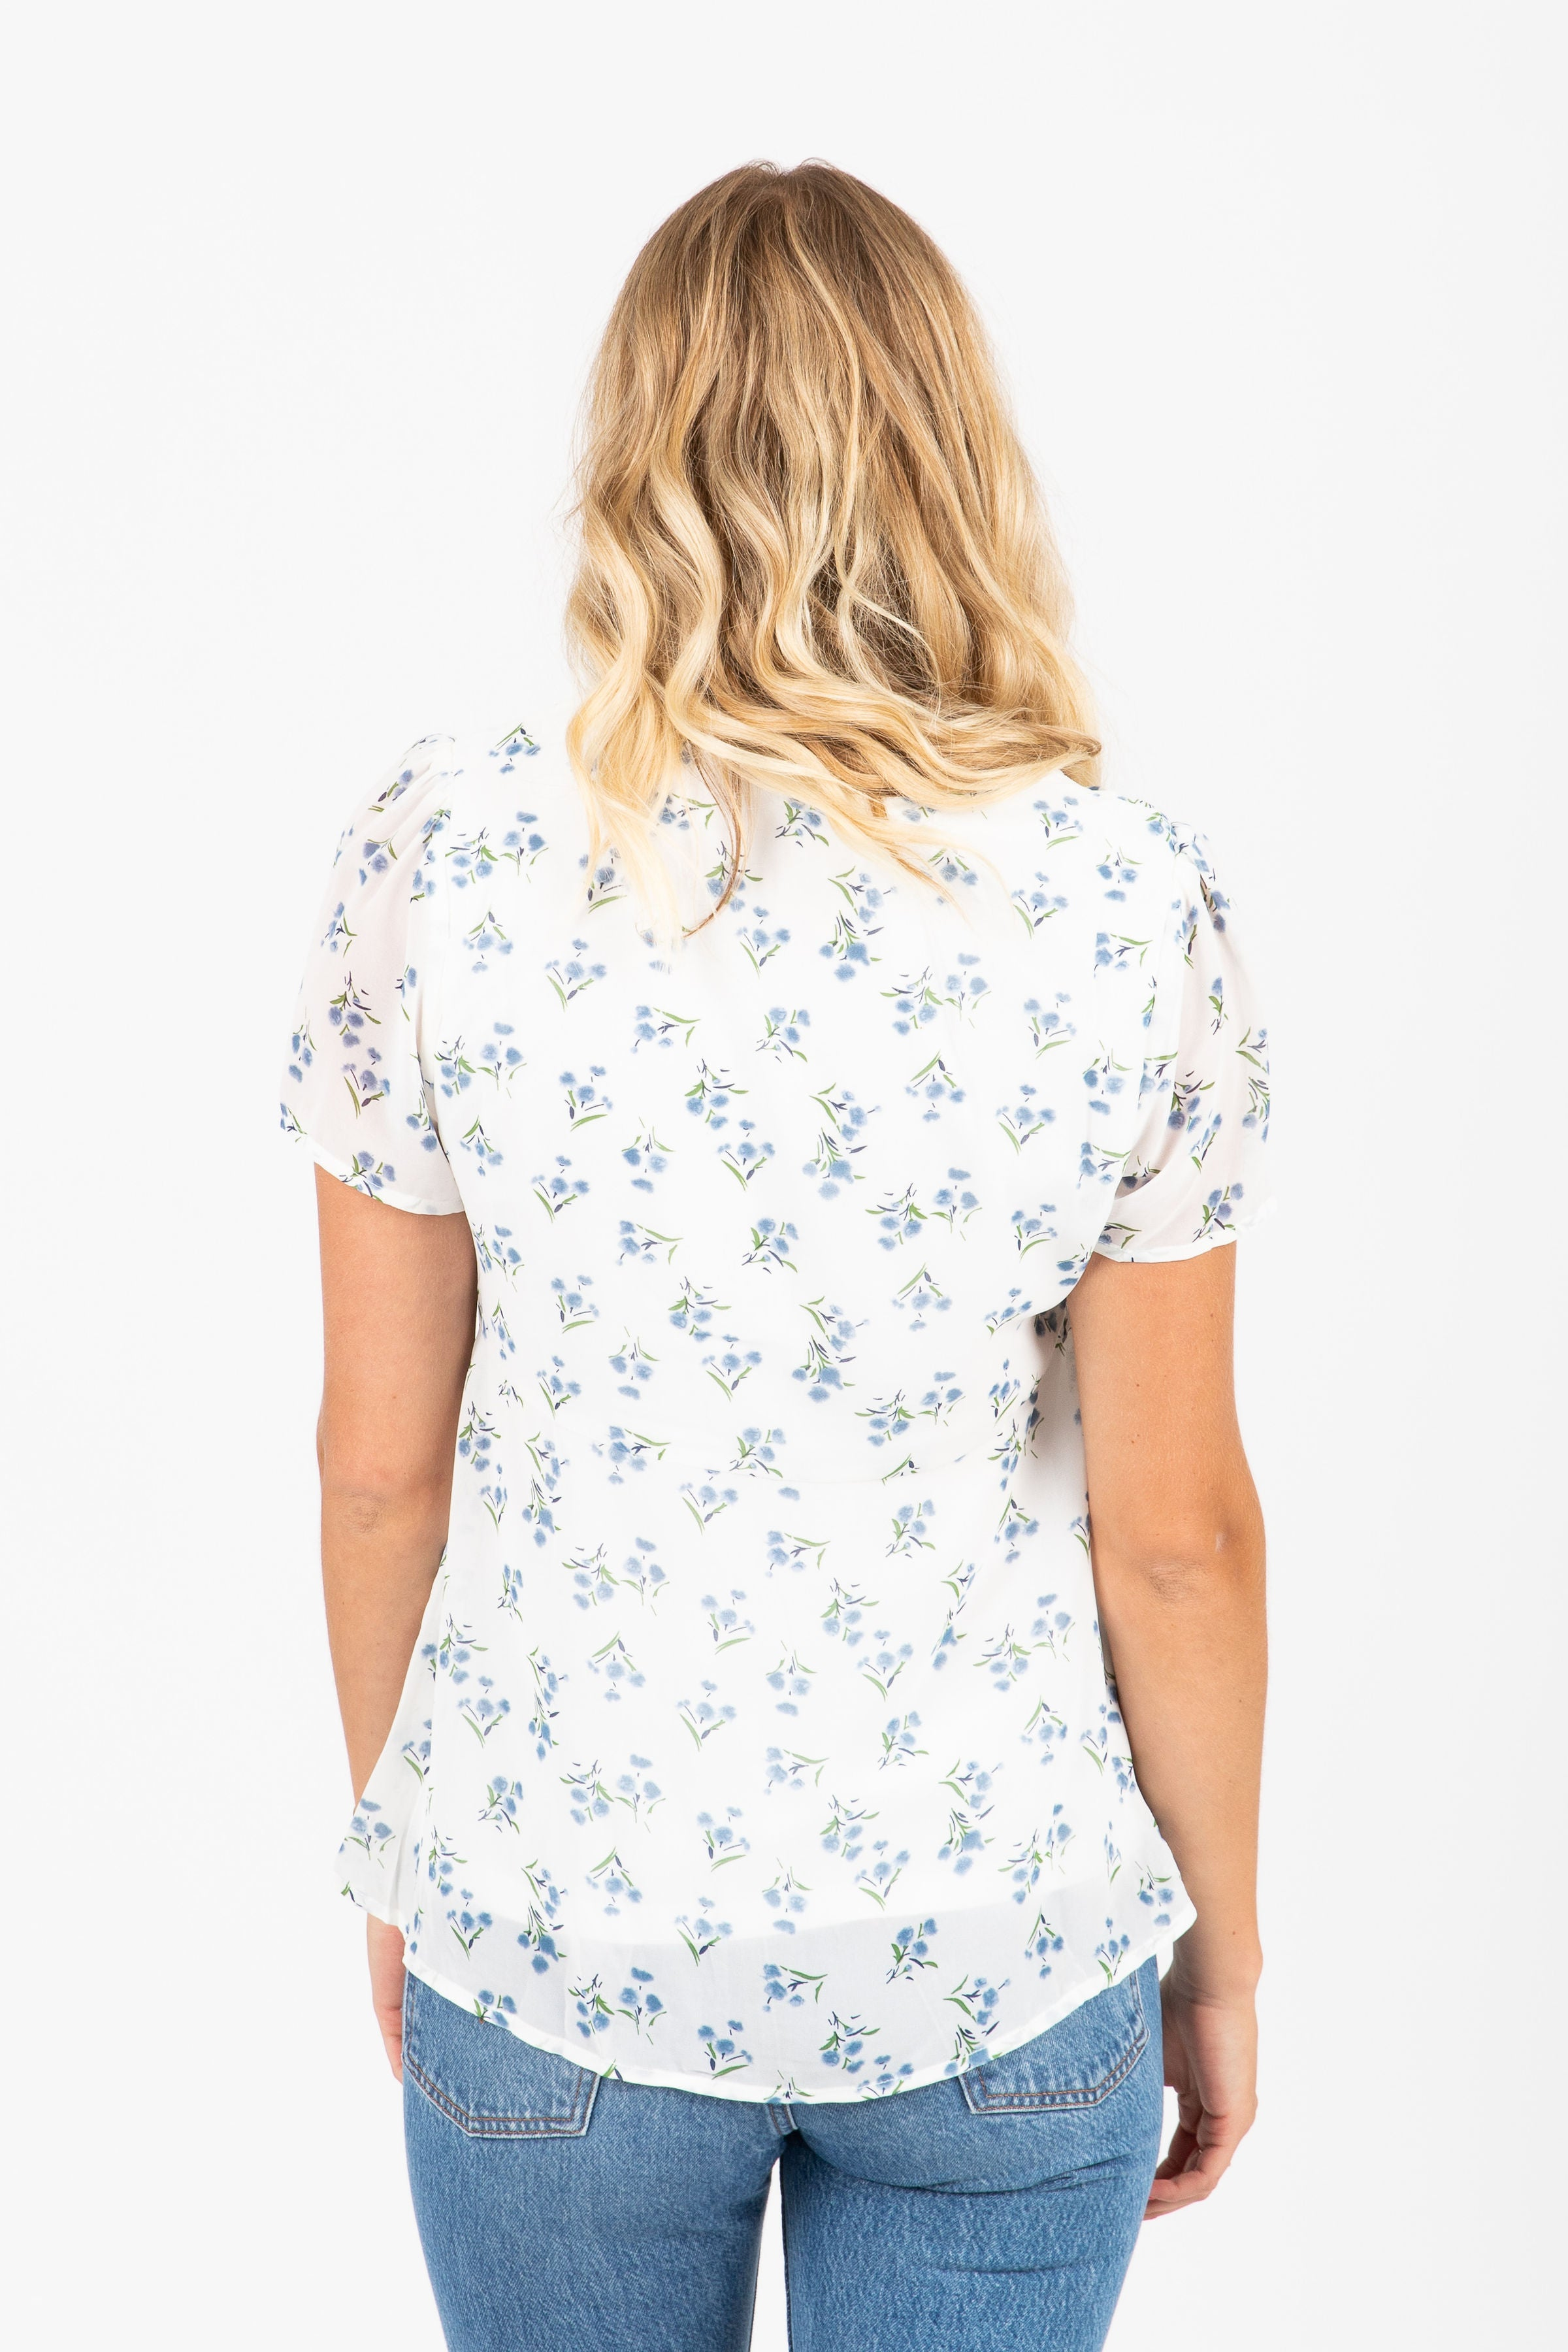 The Gallop Floral Twist Blouse in White